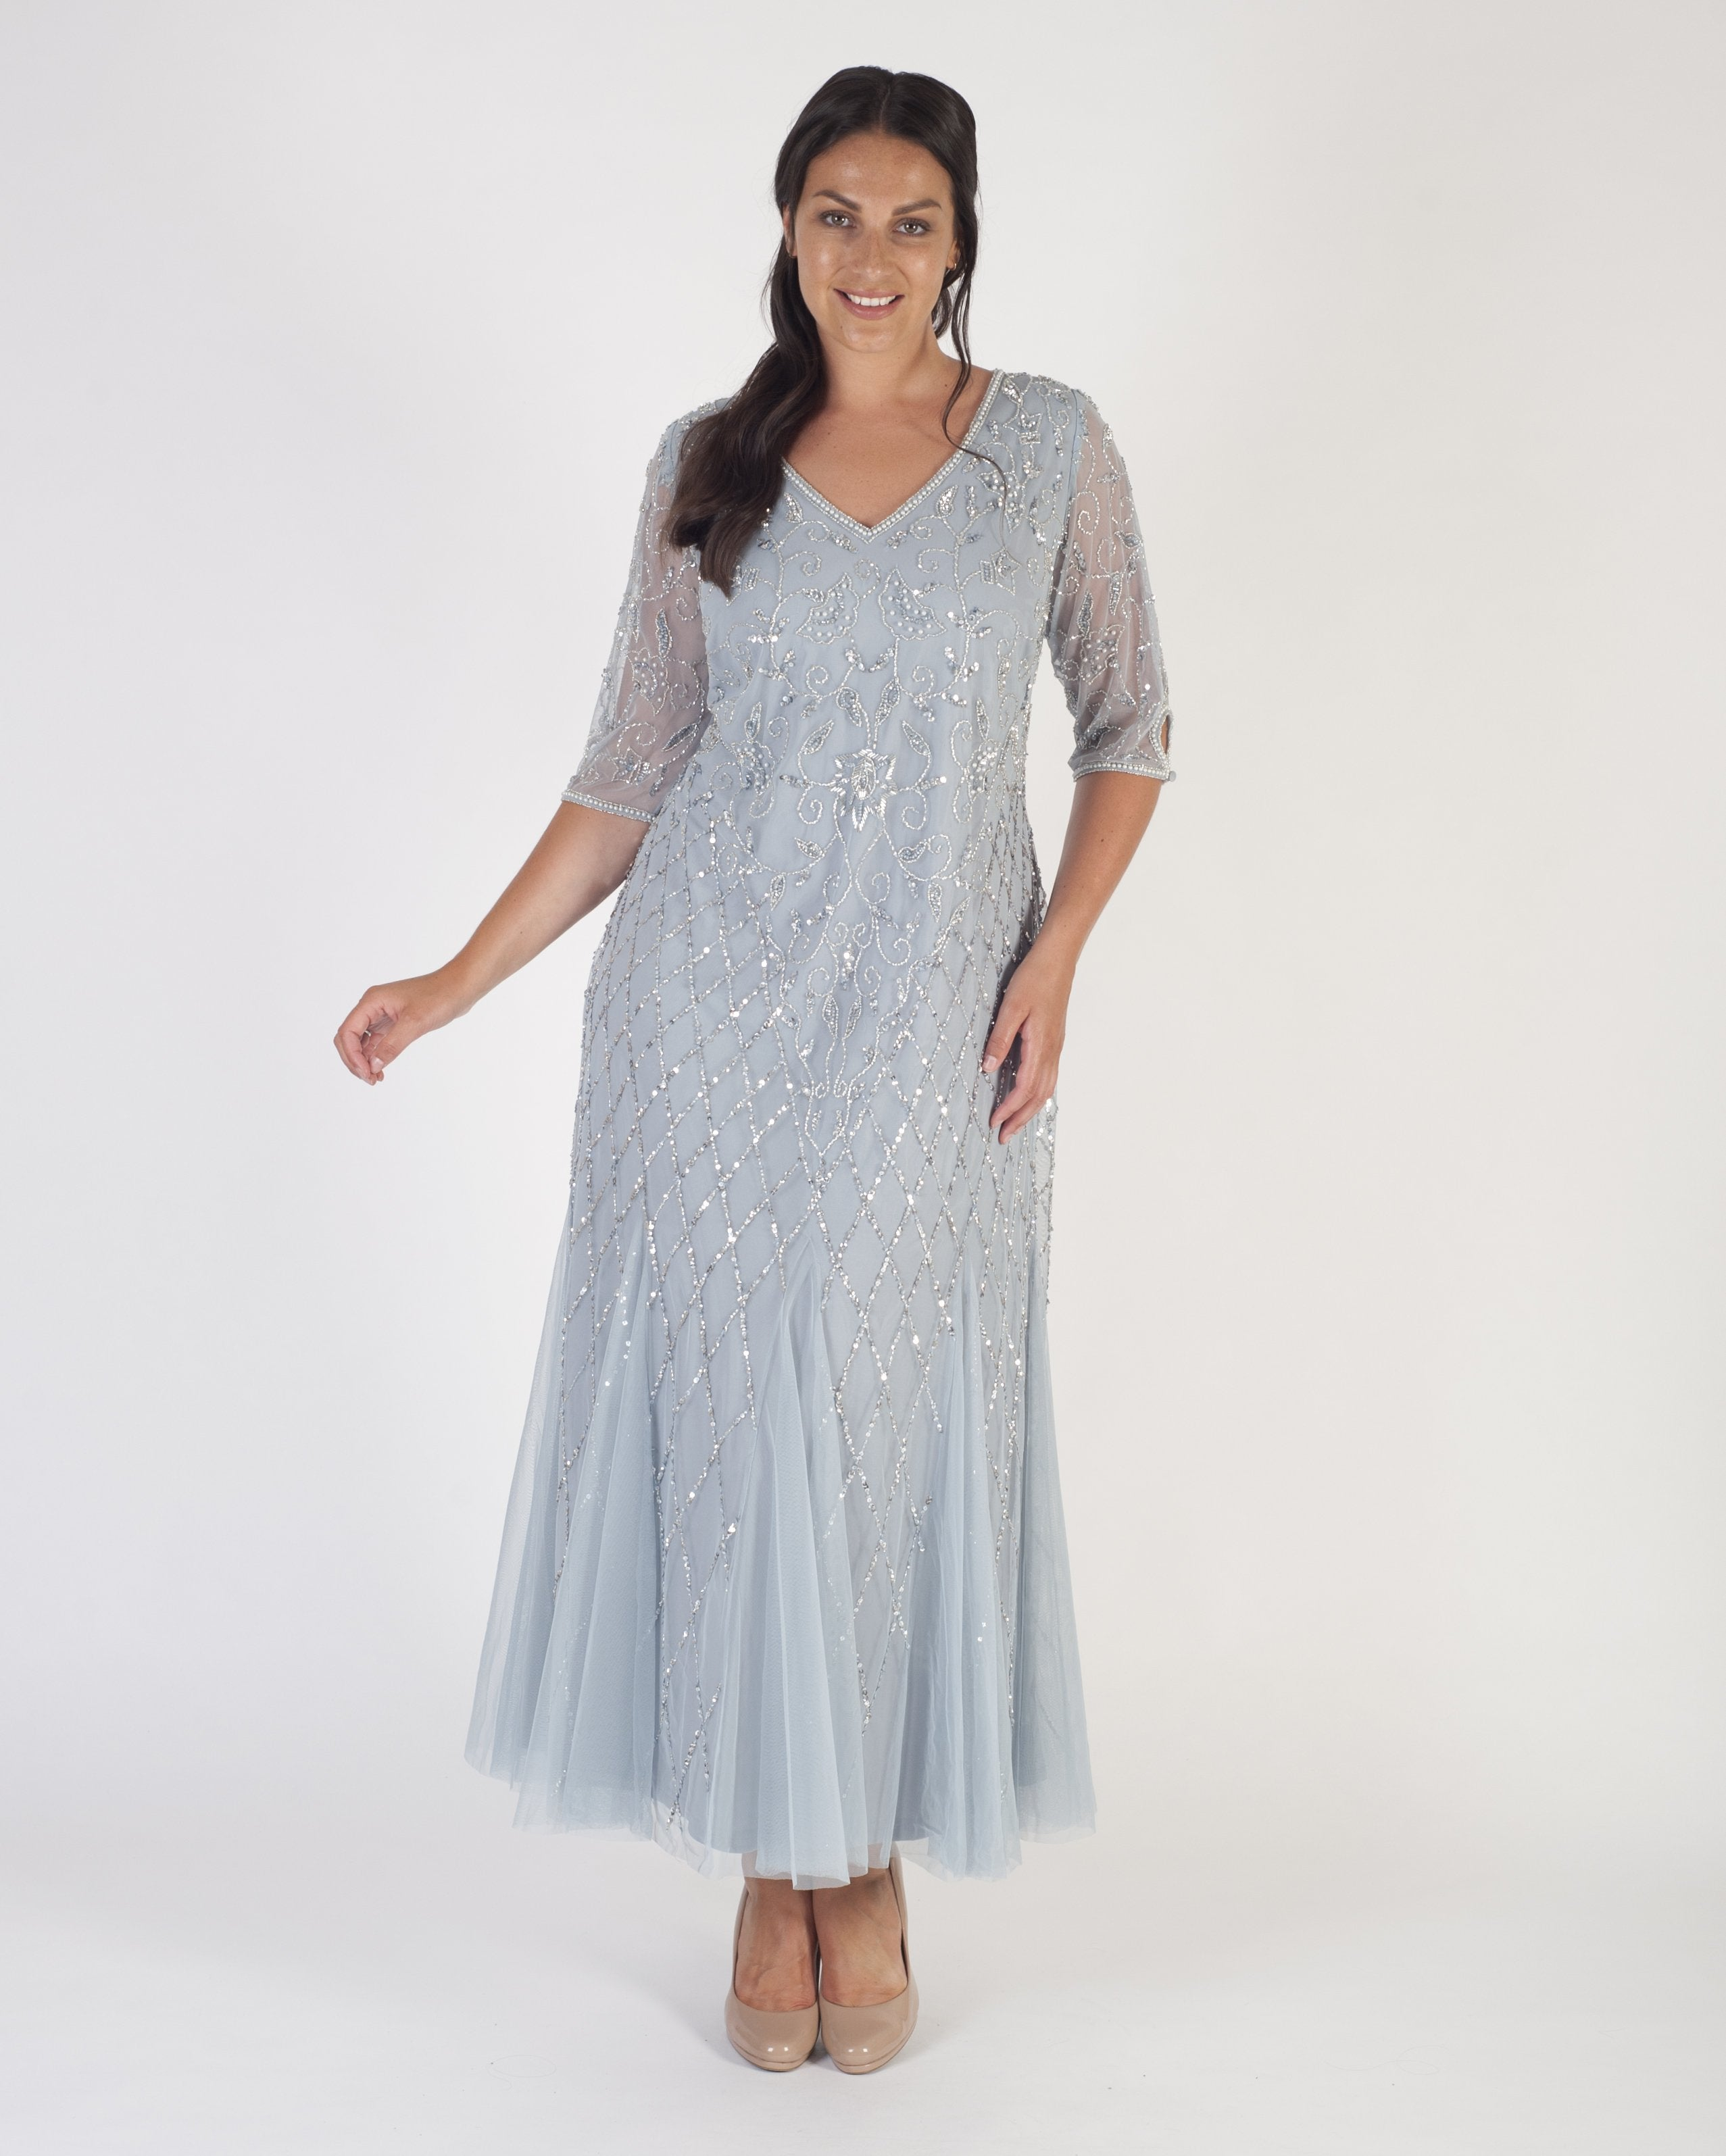 Silver Sequin & Pearl Beaded 3/4 Sleeve V-Neck Mesh Dress